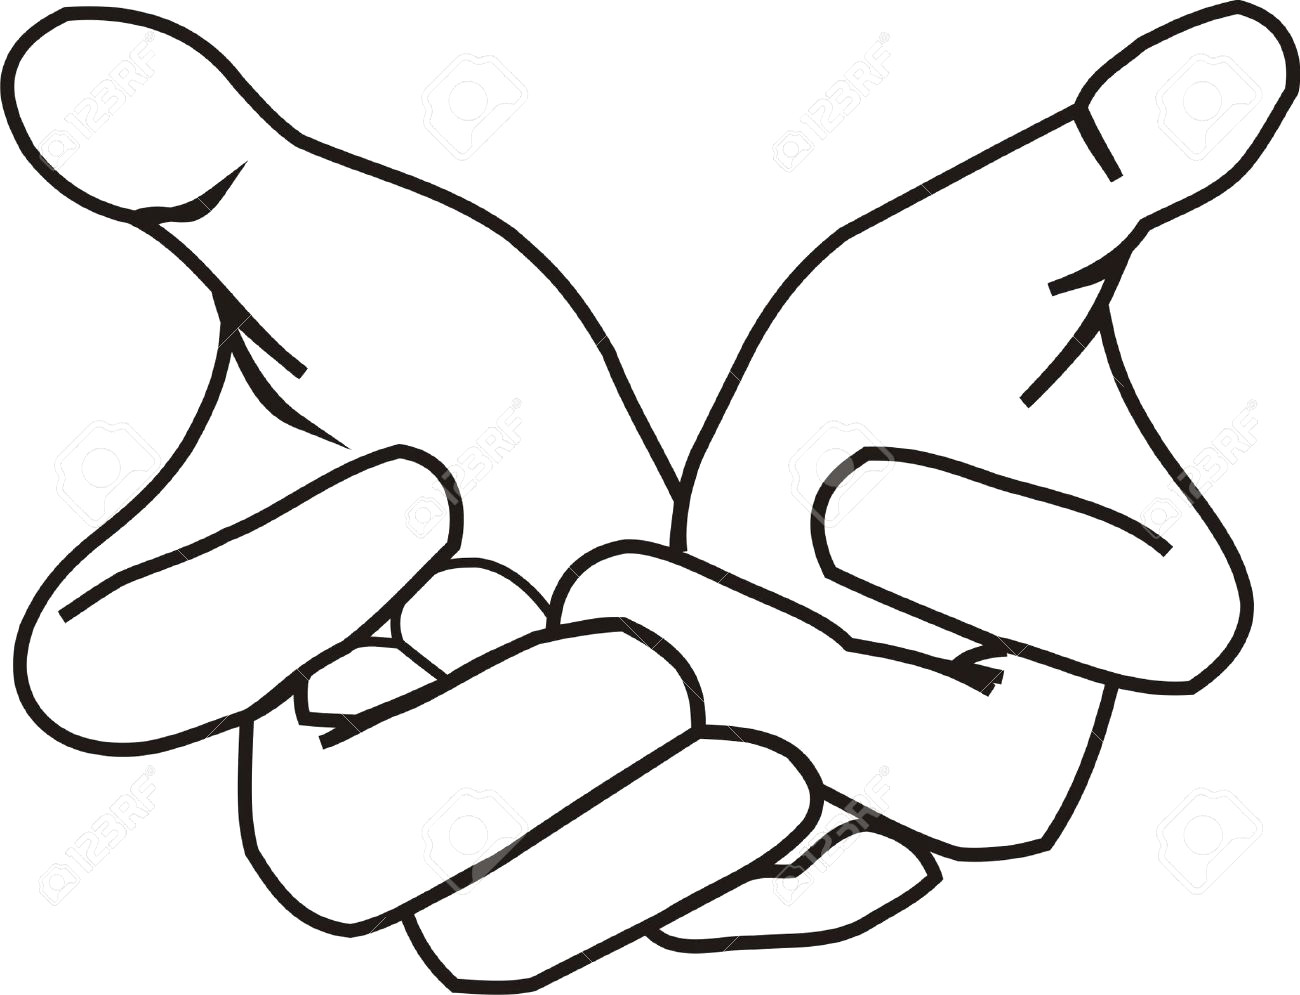 1300x995 Hand Shaking Drawing 34 Hands Clipart Black And White